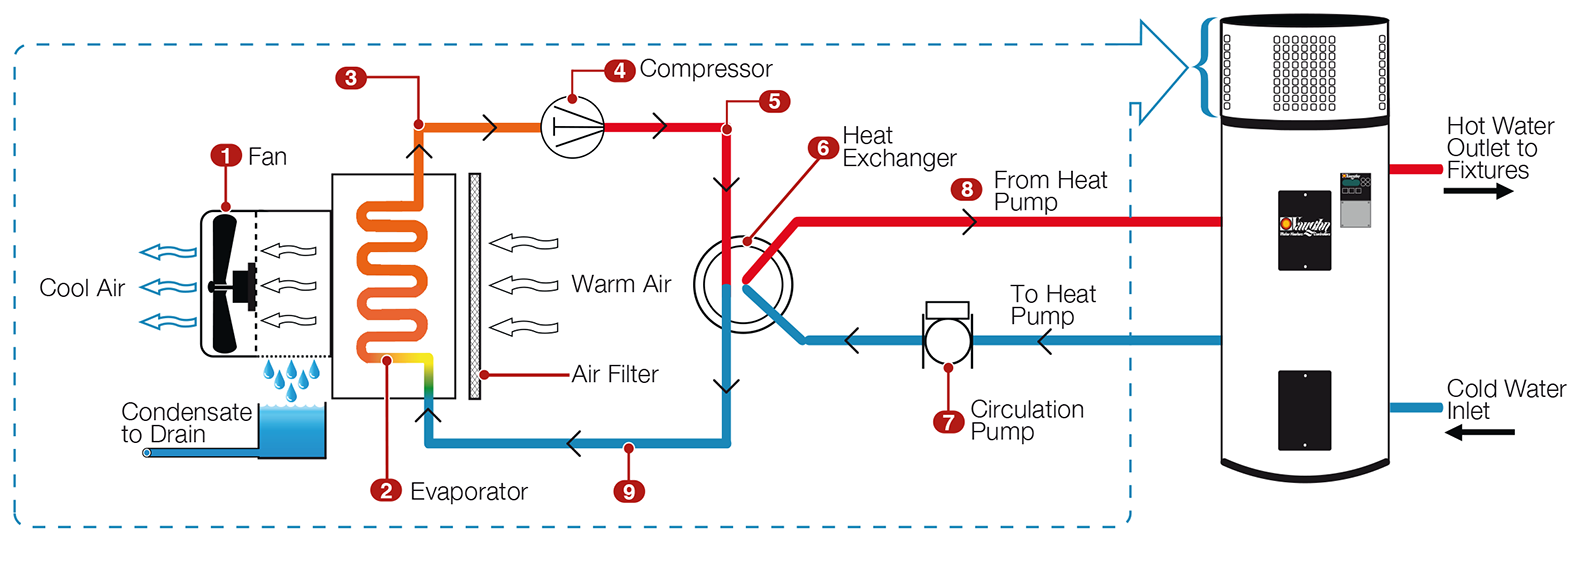 High Efficiency Electric Water Heater Vaughn How To Install An Heat Pump Operational Diagram